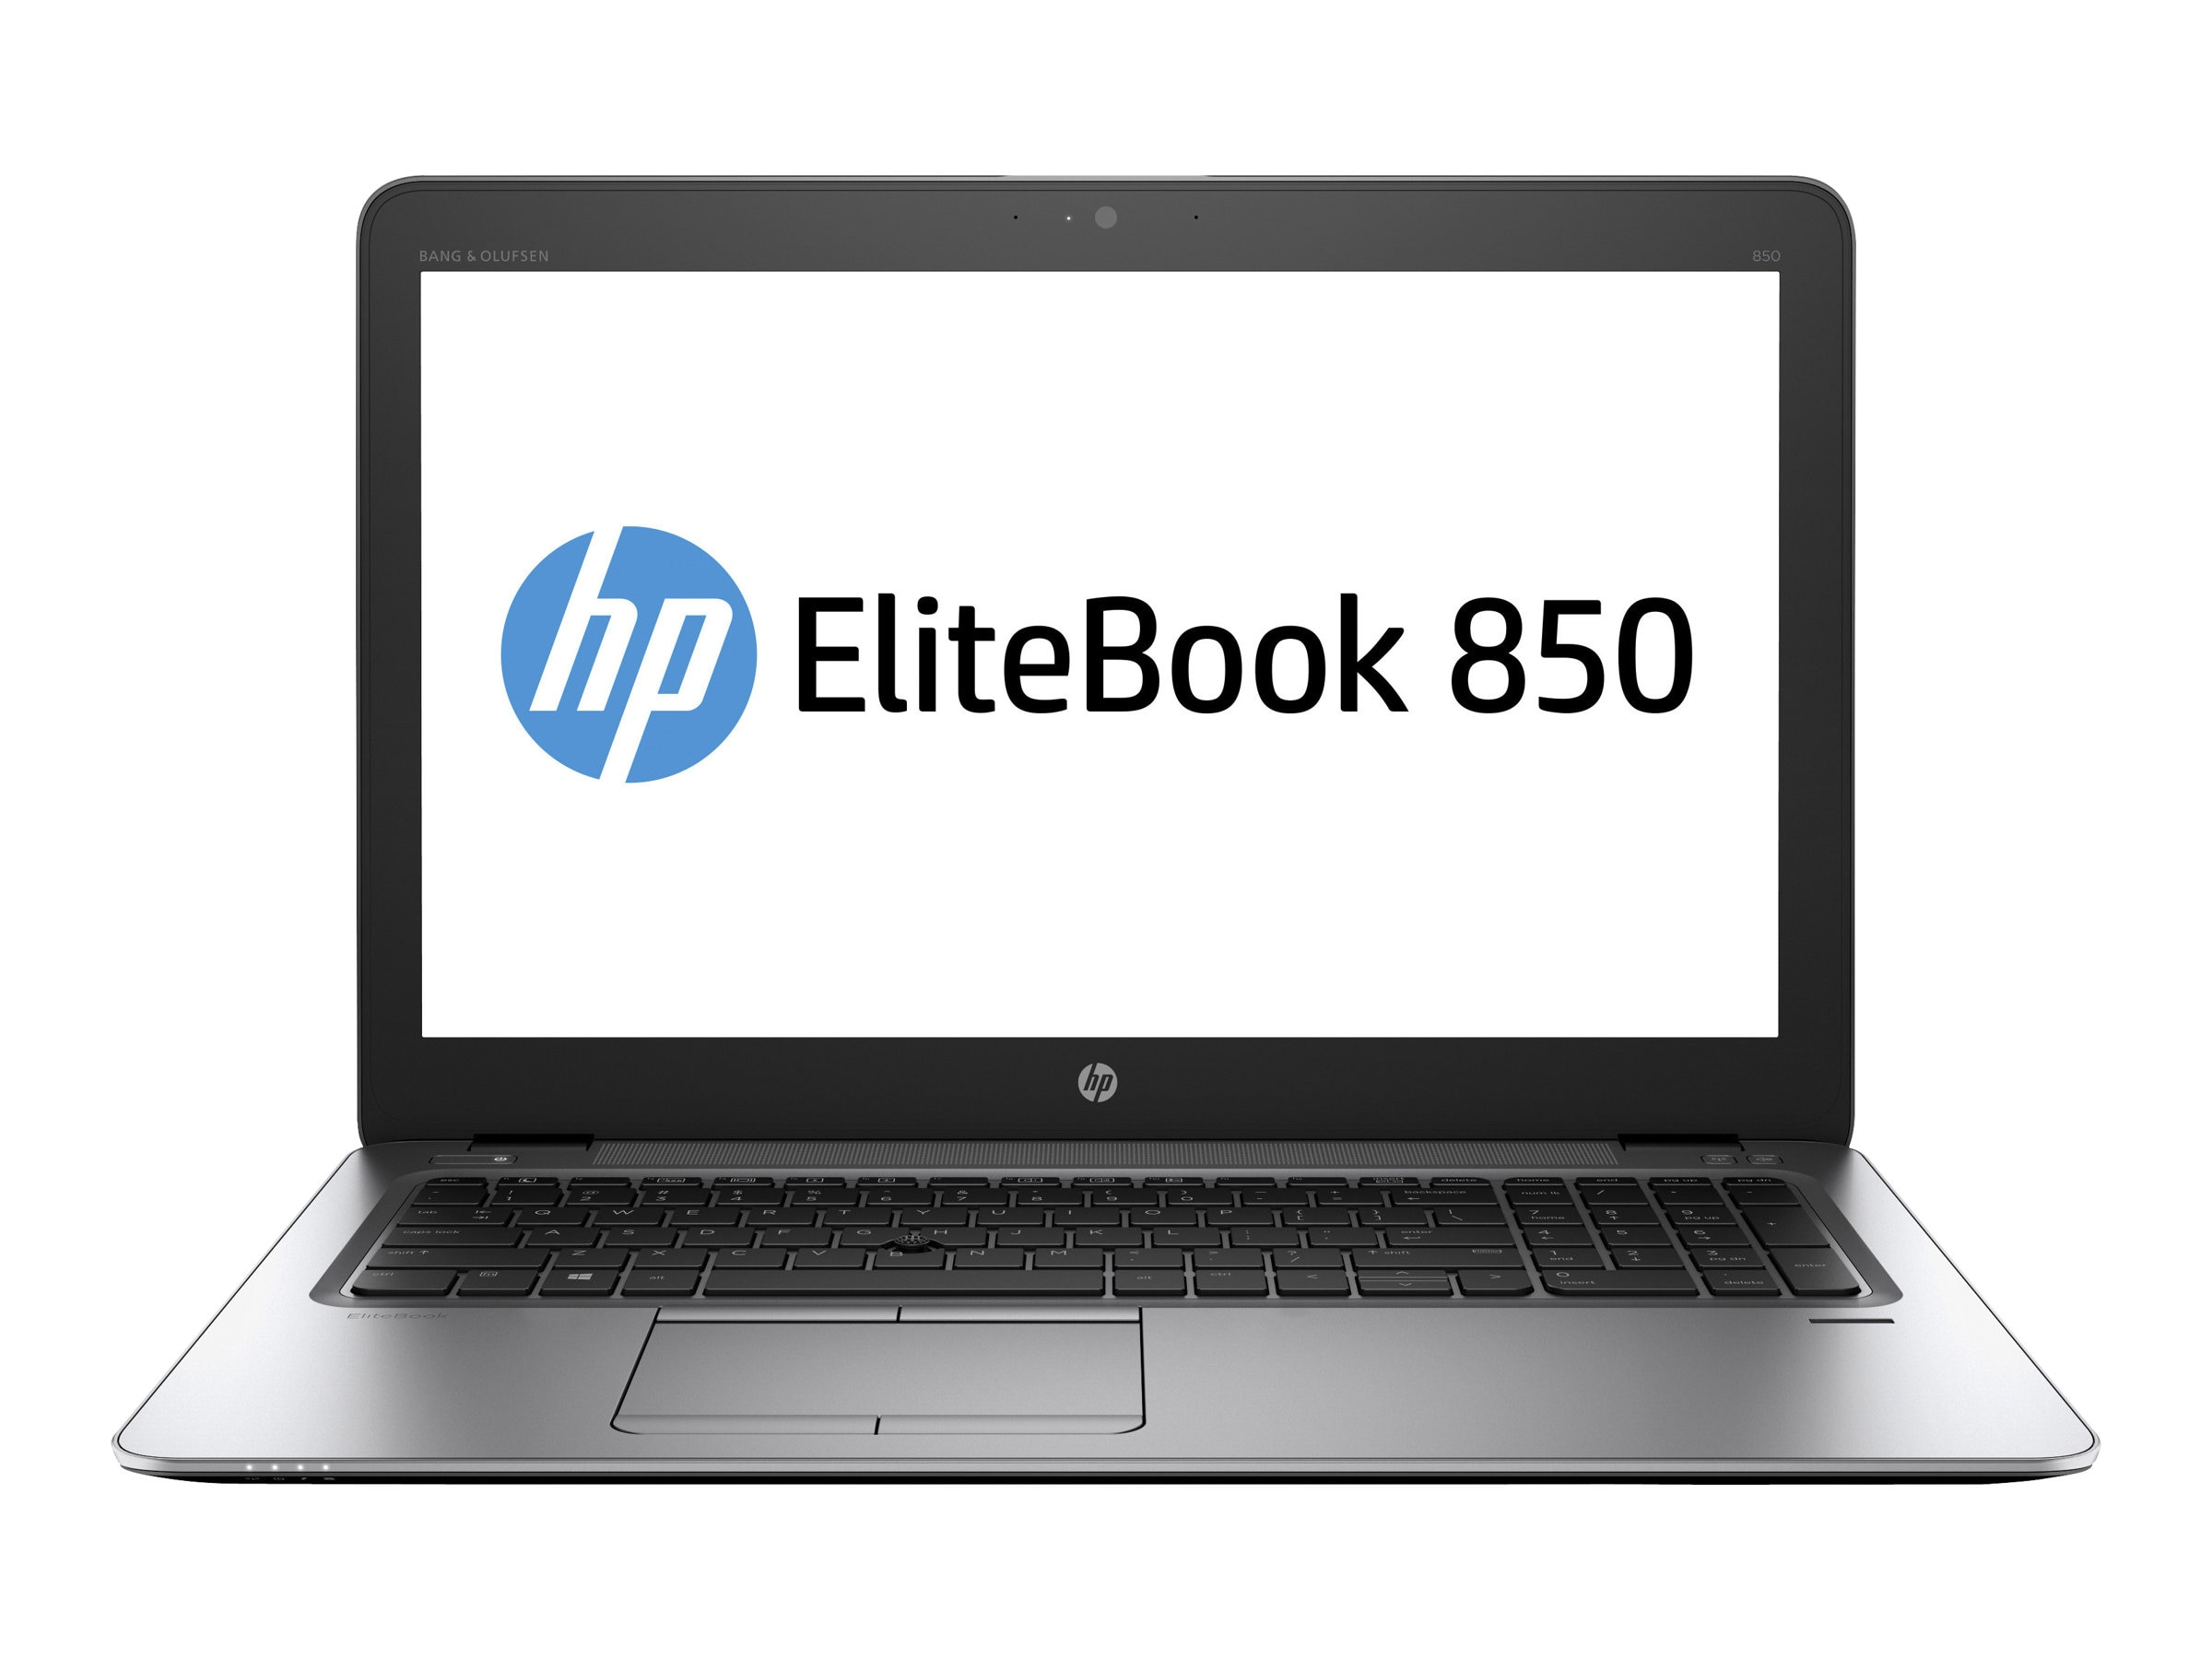 HP EliteBook 850 G3 2.3GHz Core i5 15.6in display, V1H18UT#ABA